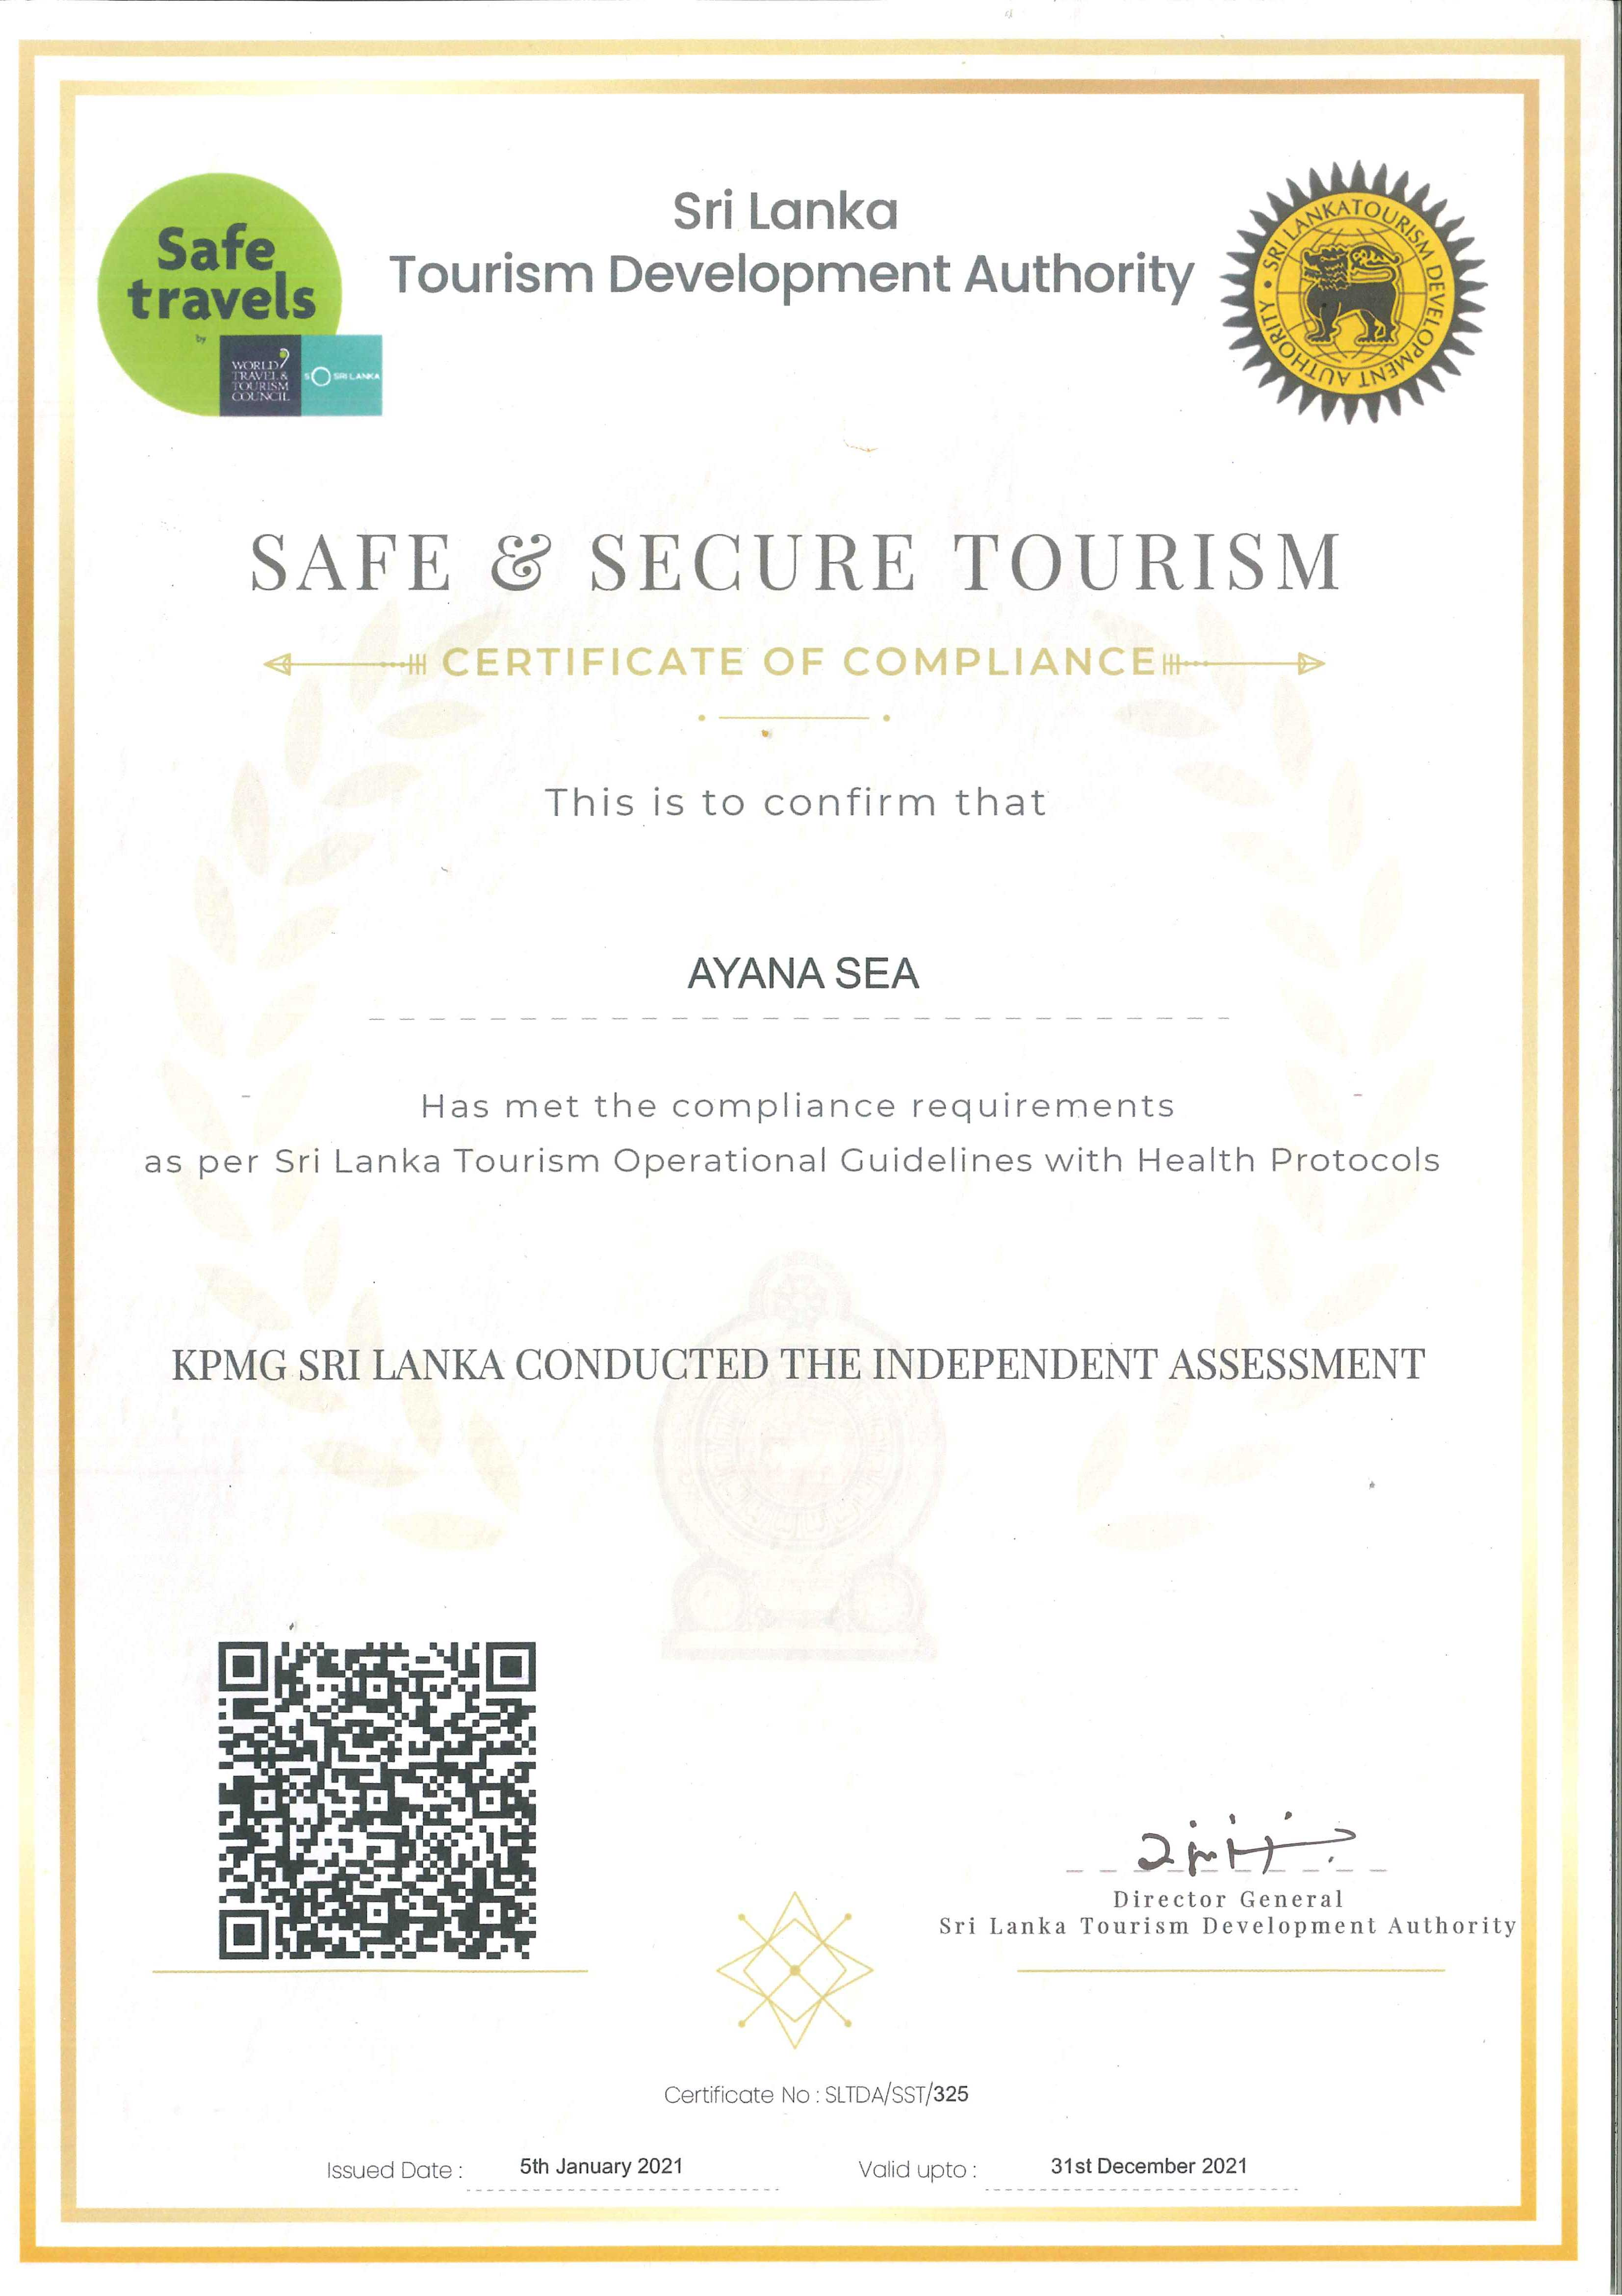 Safe & Secure Tourism with Ayana